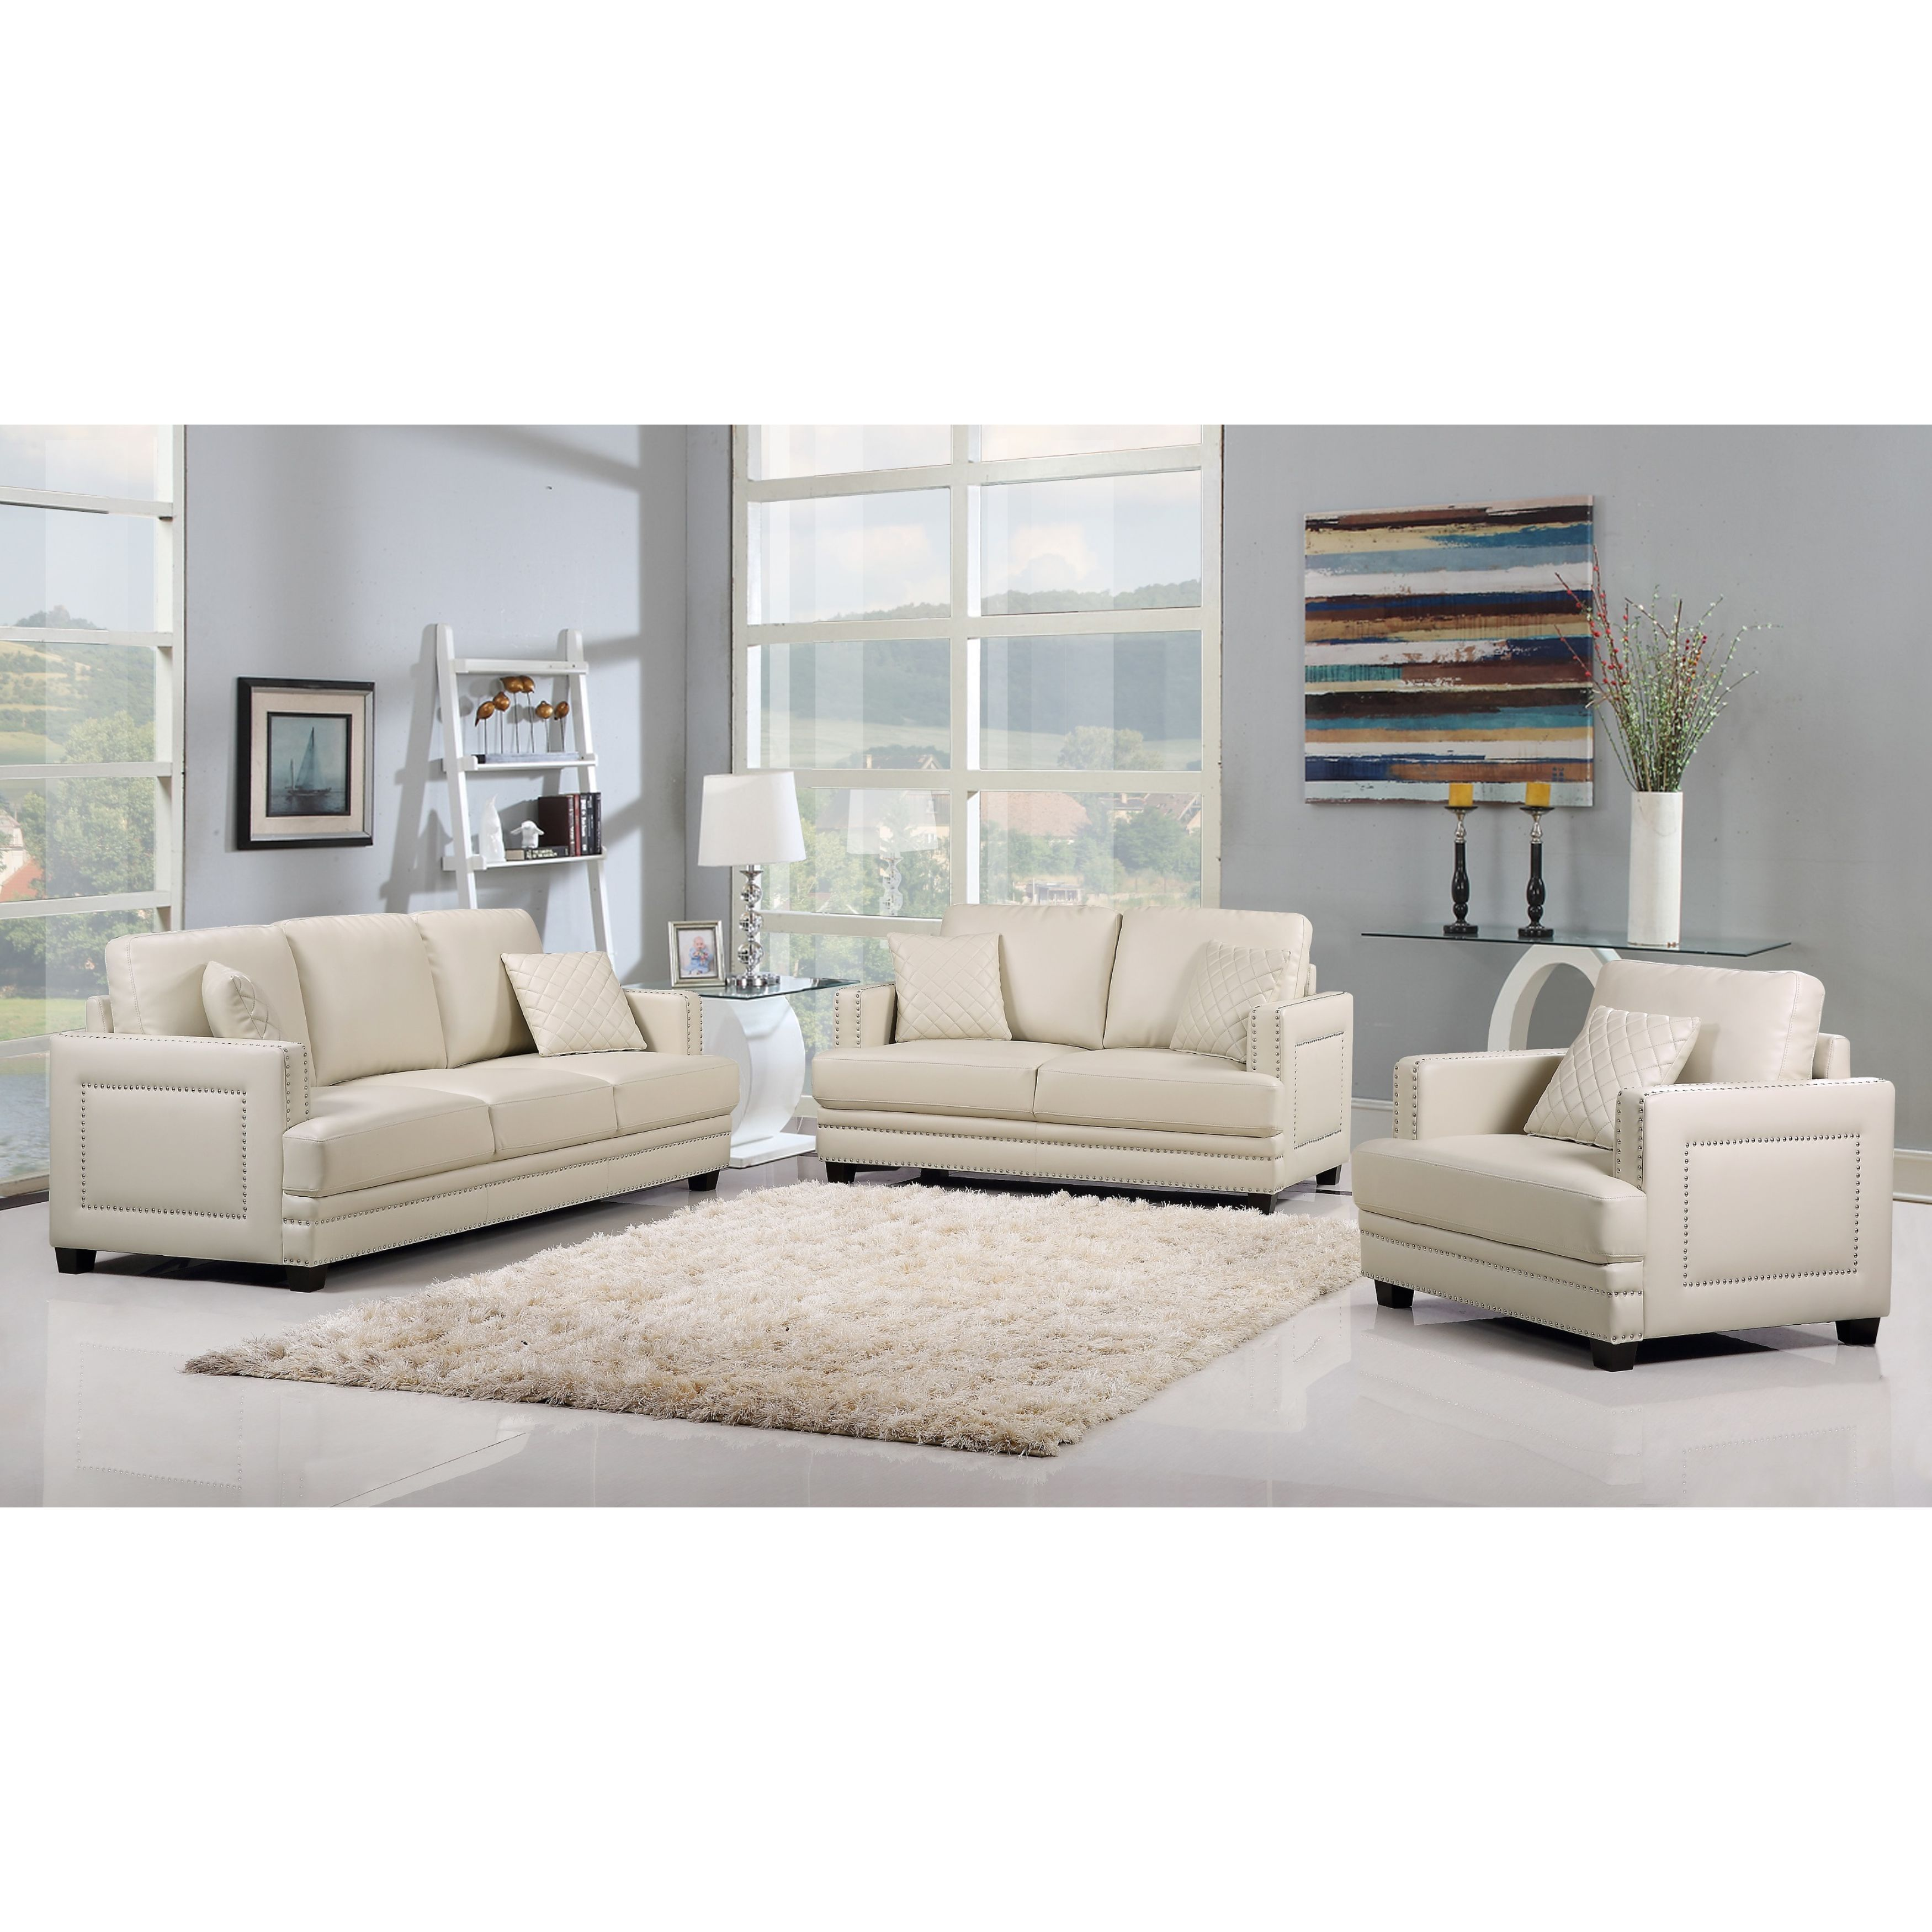 Ferrara Beige Leather Nailhead Modern Contemporary Living Room Set ...